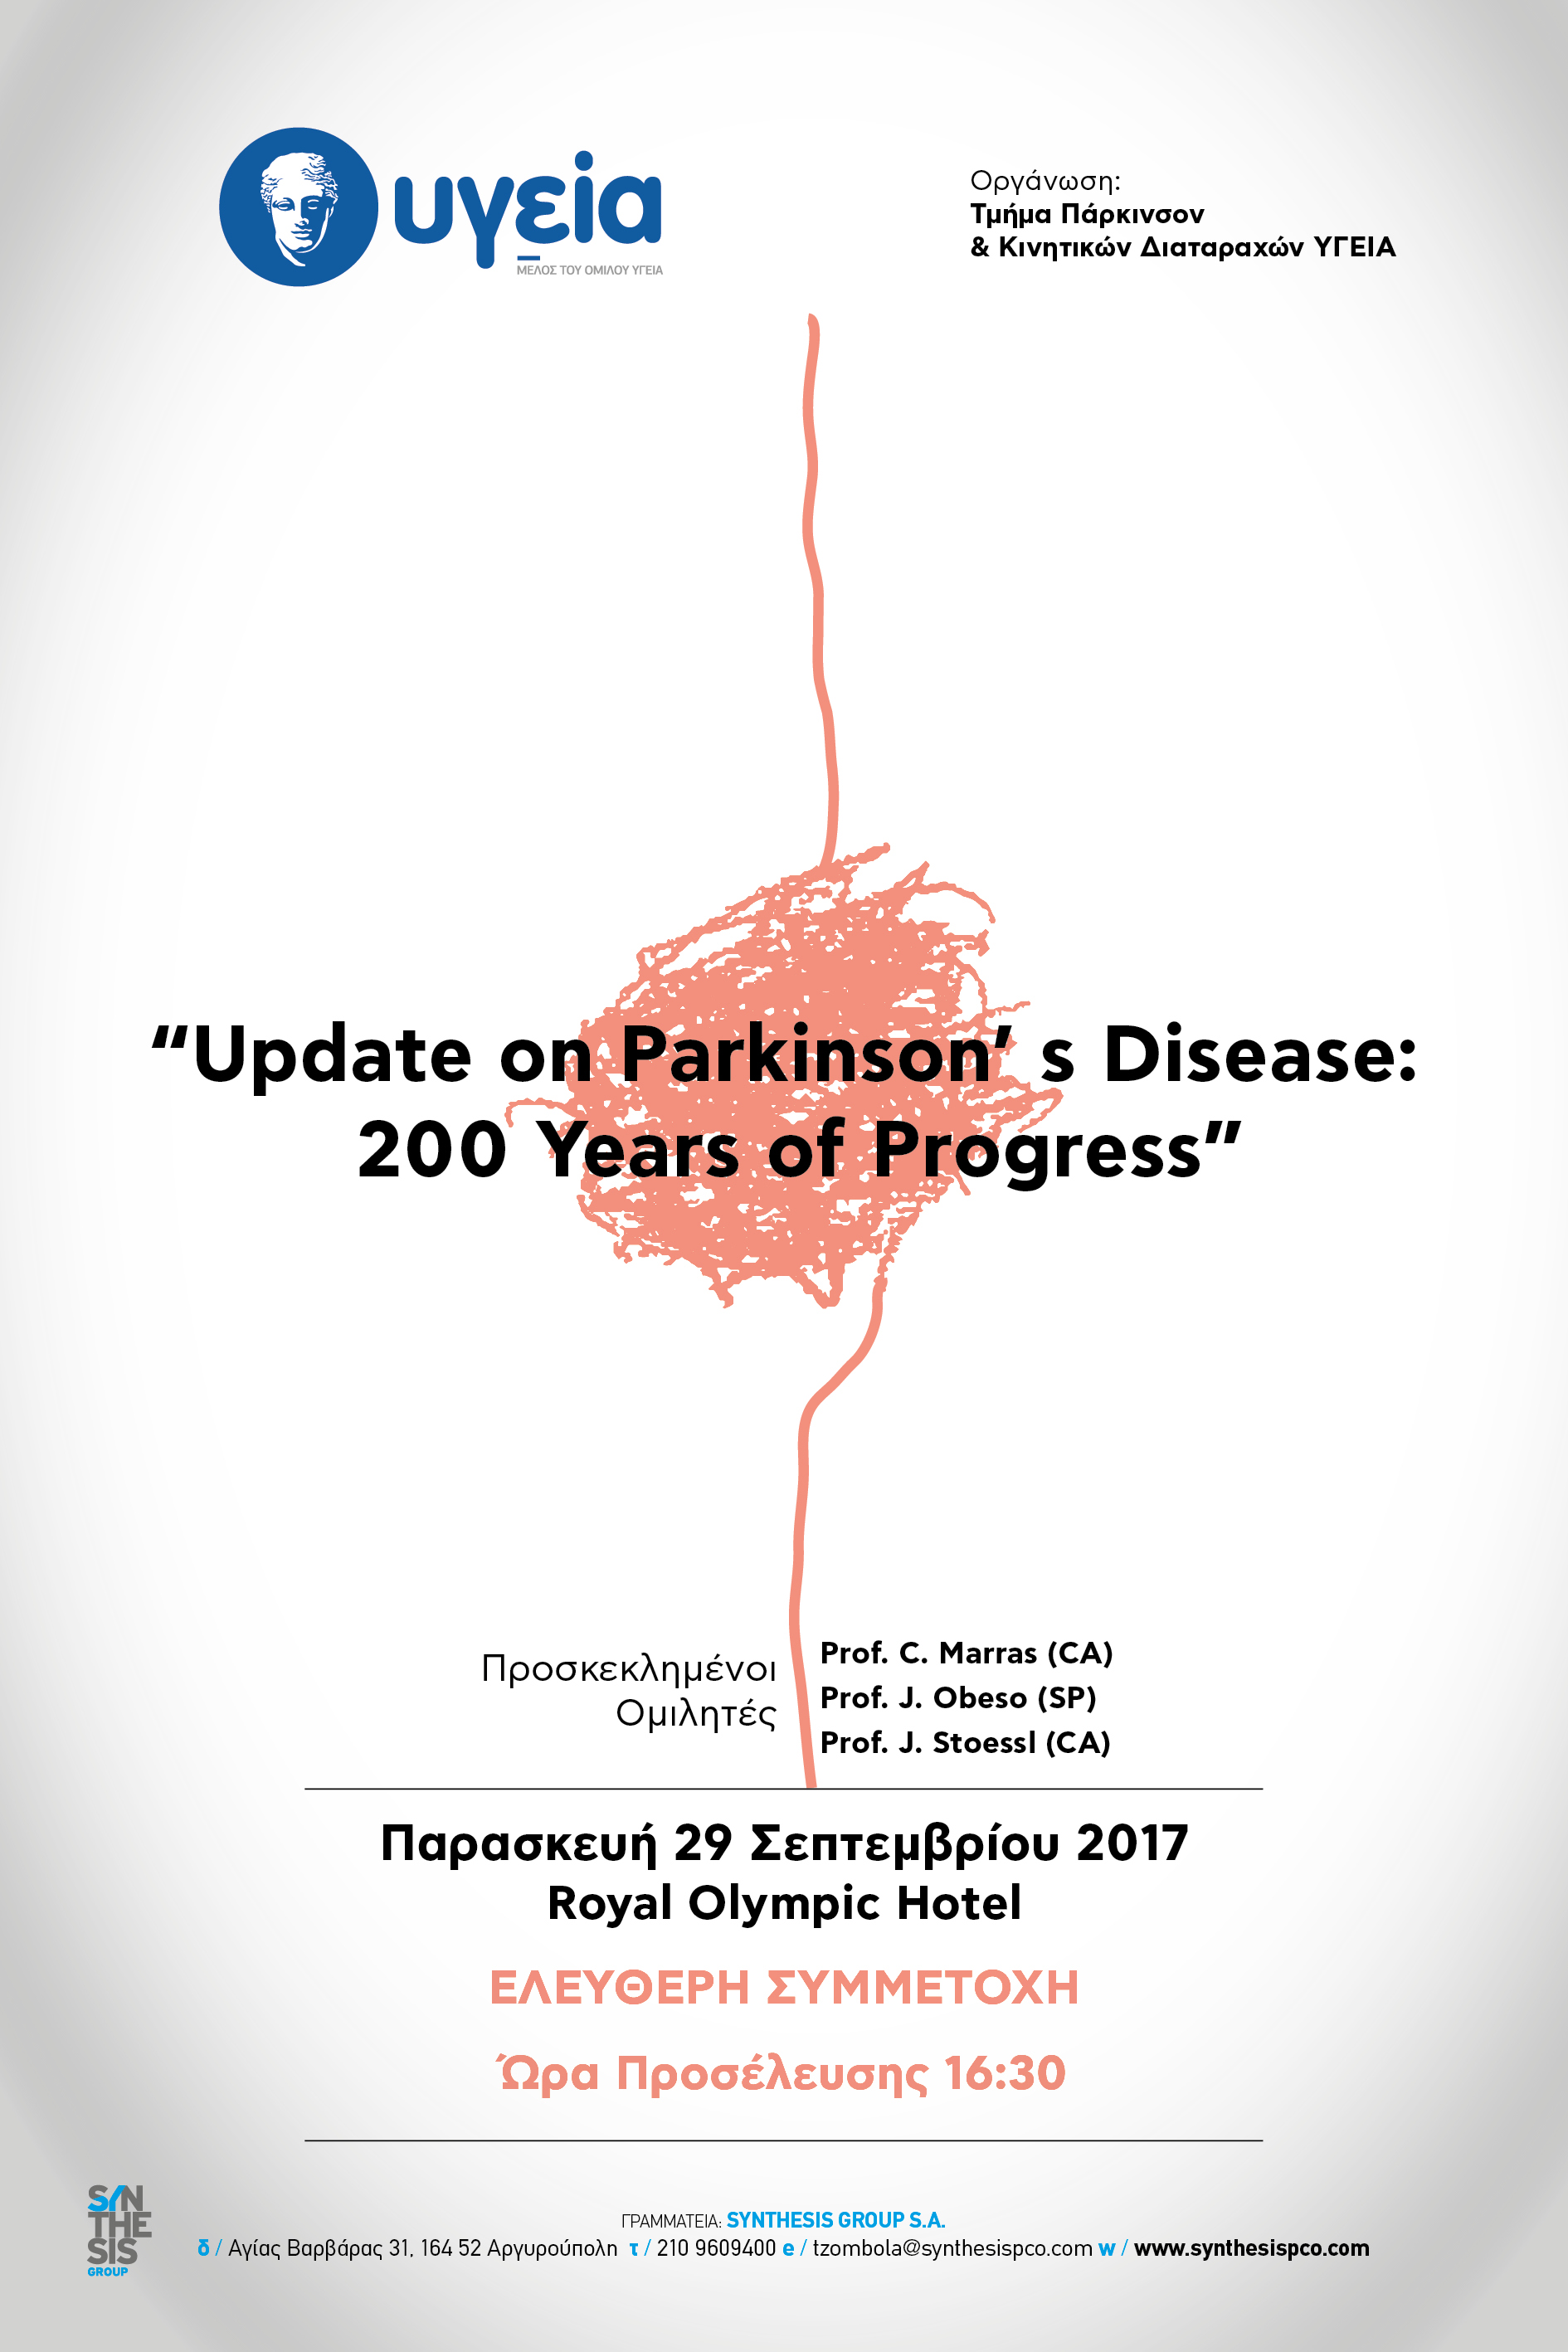 ''Update on Parkison's Disease: 200 Years of Progress''